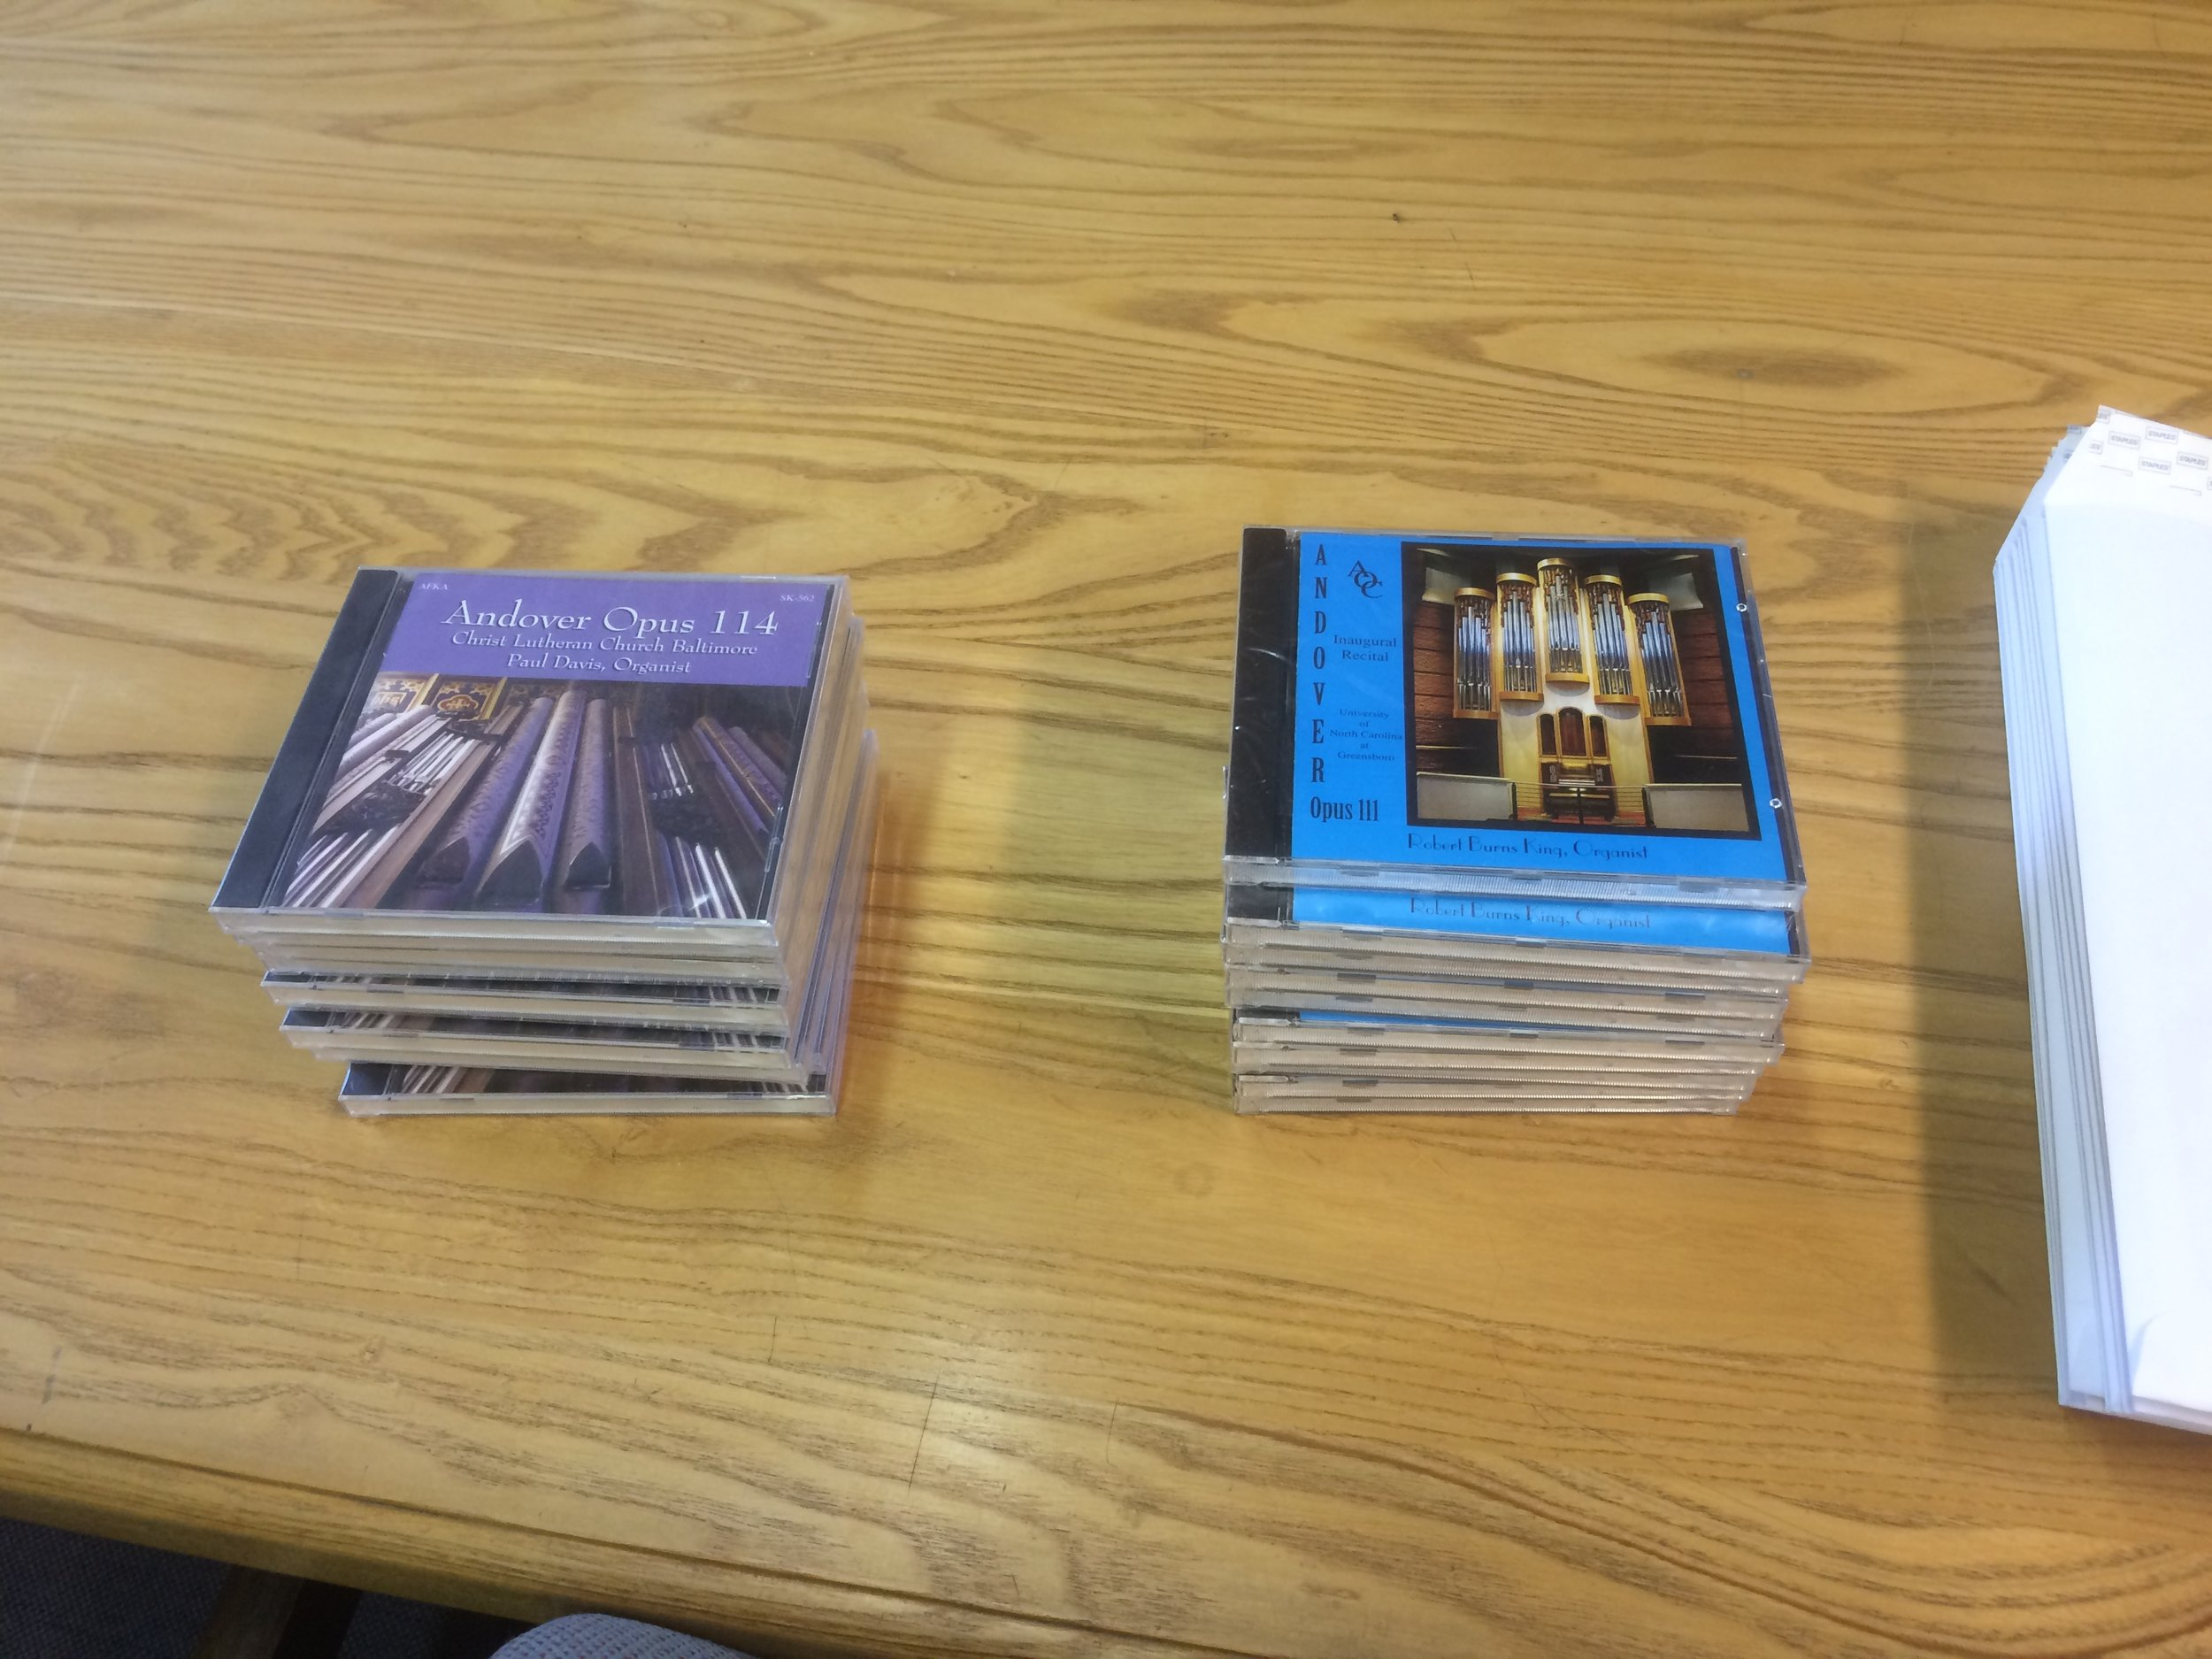 We received some nice goodies from the Andover Organ Company for visiting – CD's of people playing on organs they built.